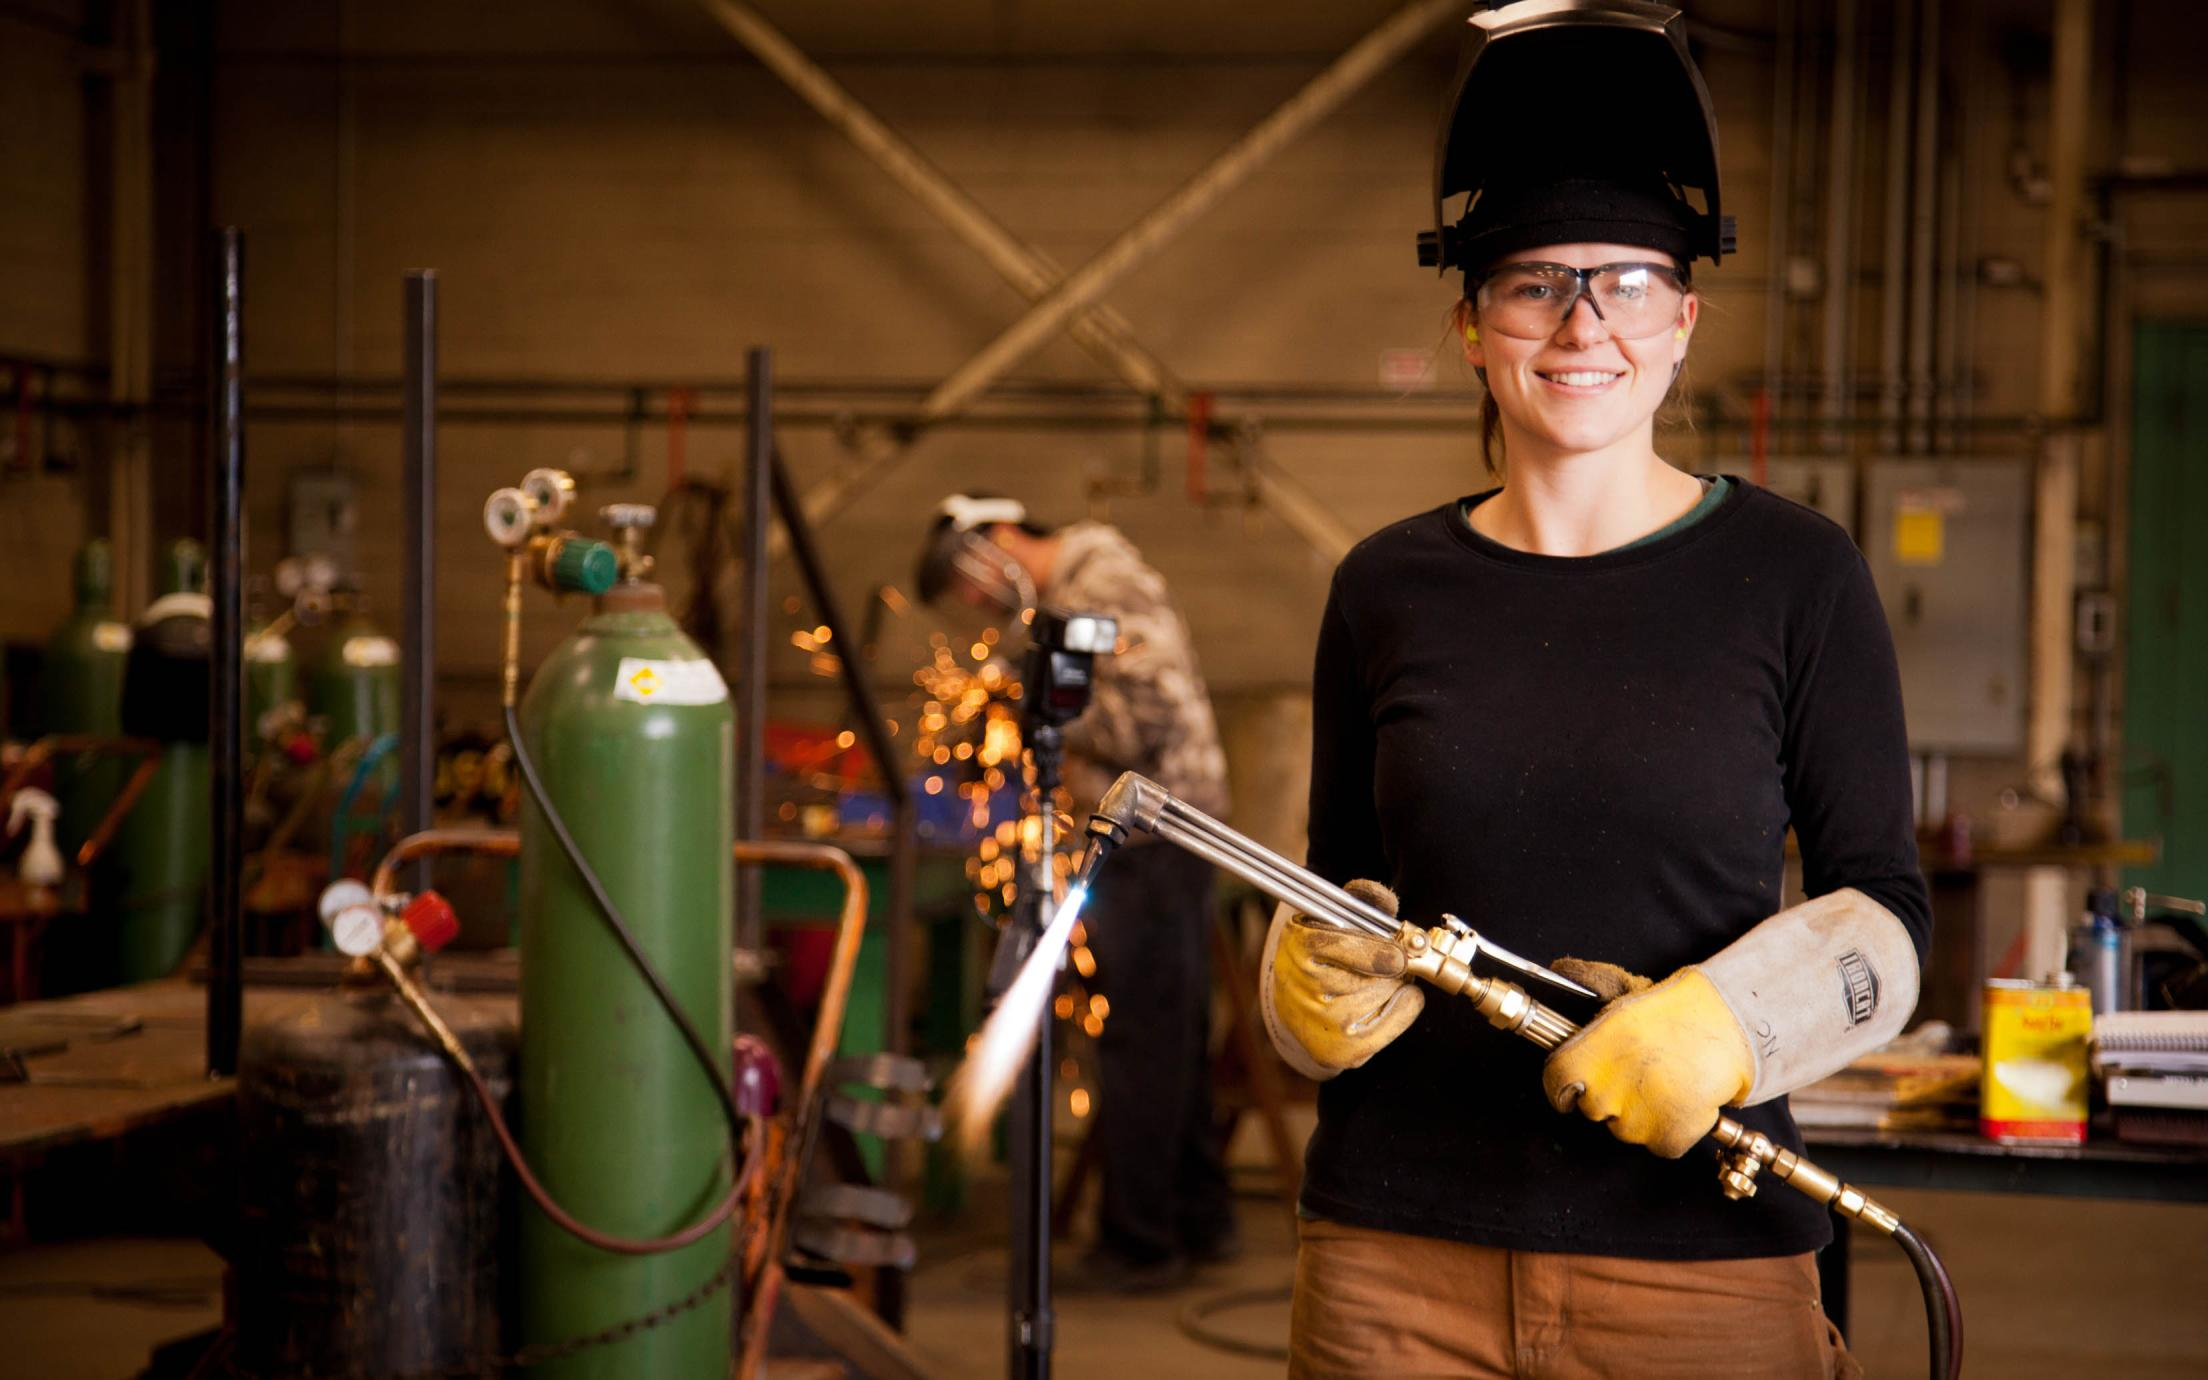 Welding Certification Student, Natalie Chester, working on a project at VIU's Welding school